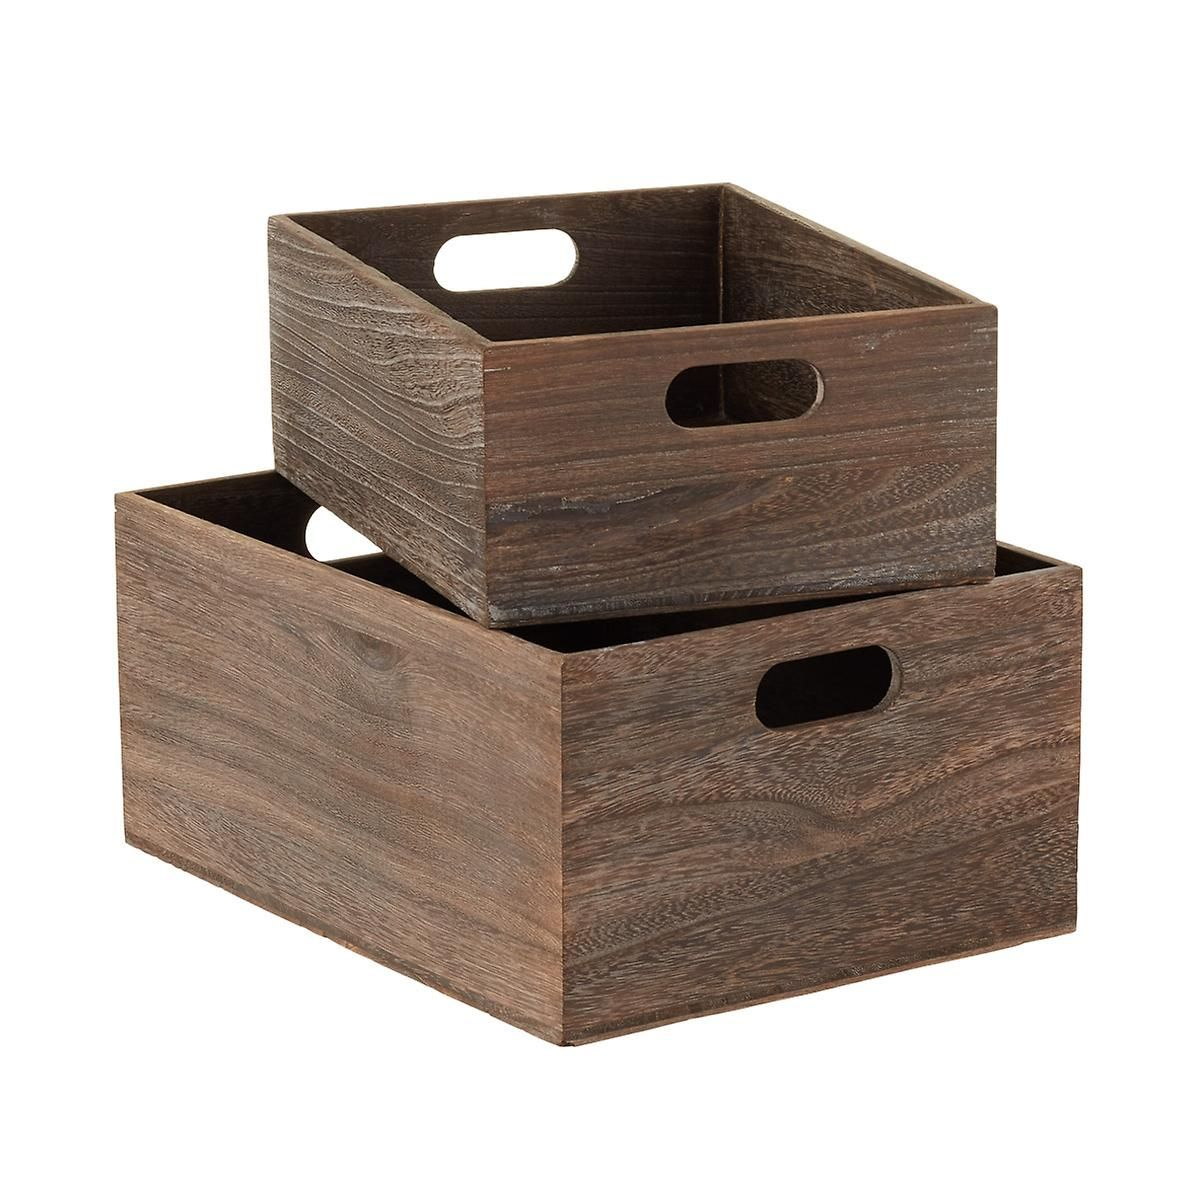 Feathergrain Wooden Storage Bins With Handles Wooden Storage Bins Wooden Bins Wooden Storage